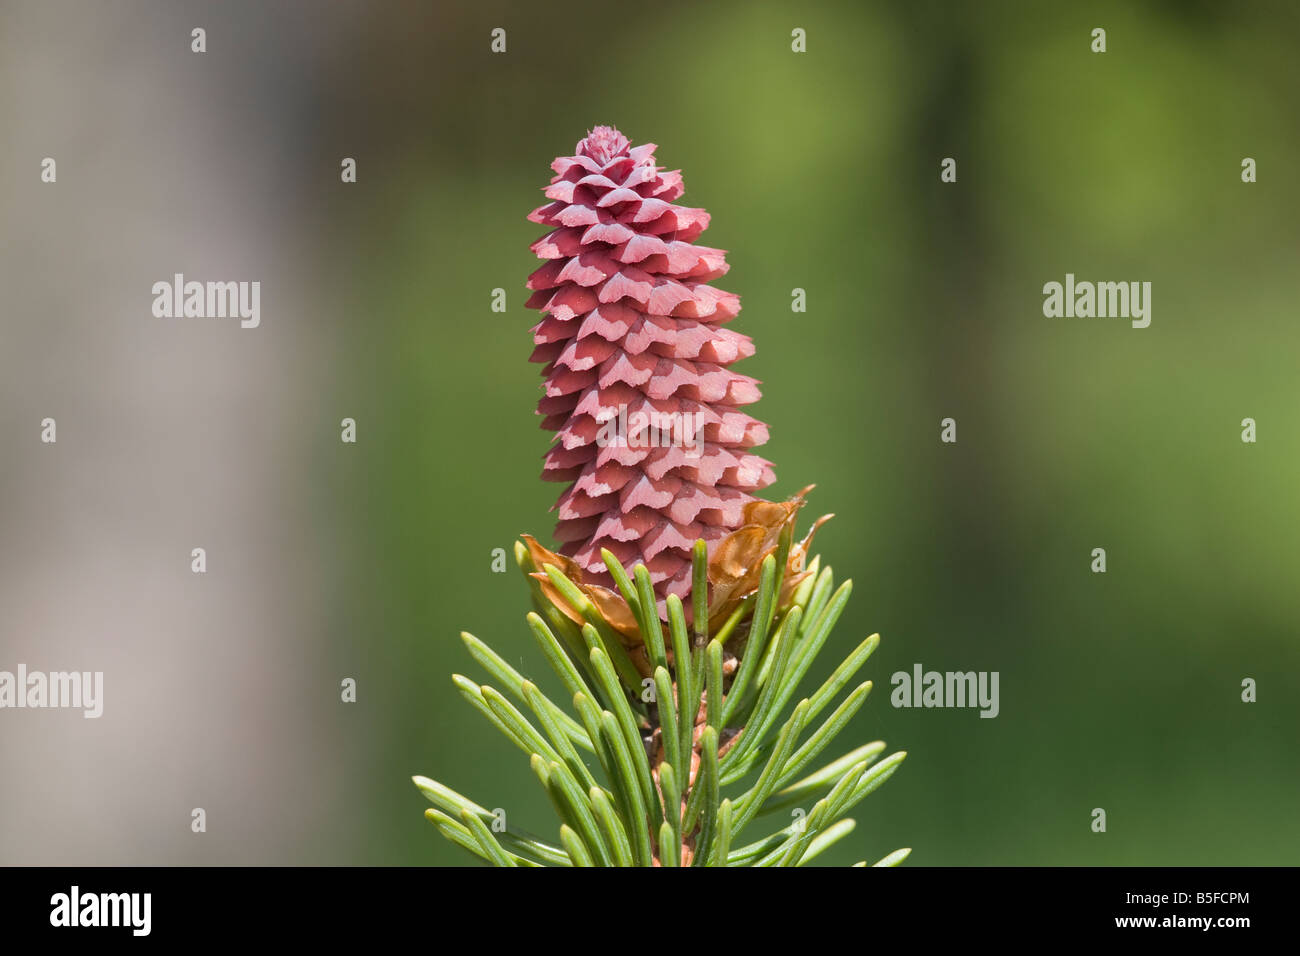 Picea abies Spruce cone pinecone tree conifer kernel - Stock Image